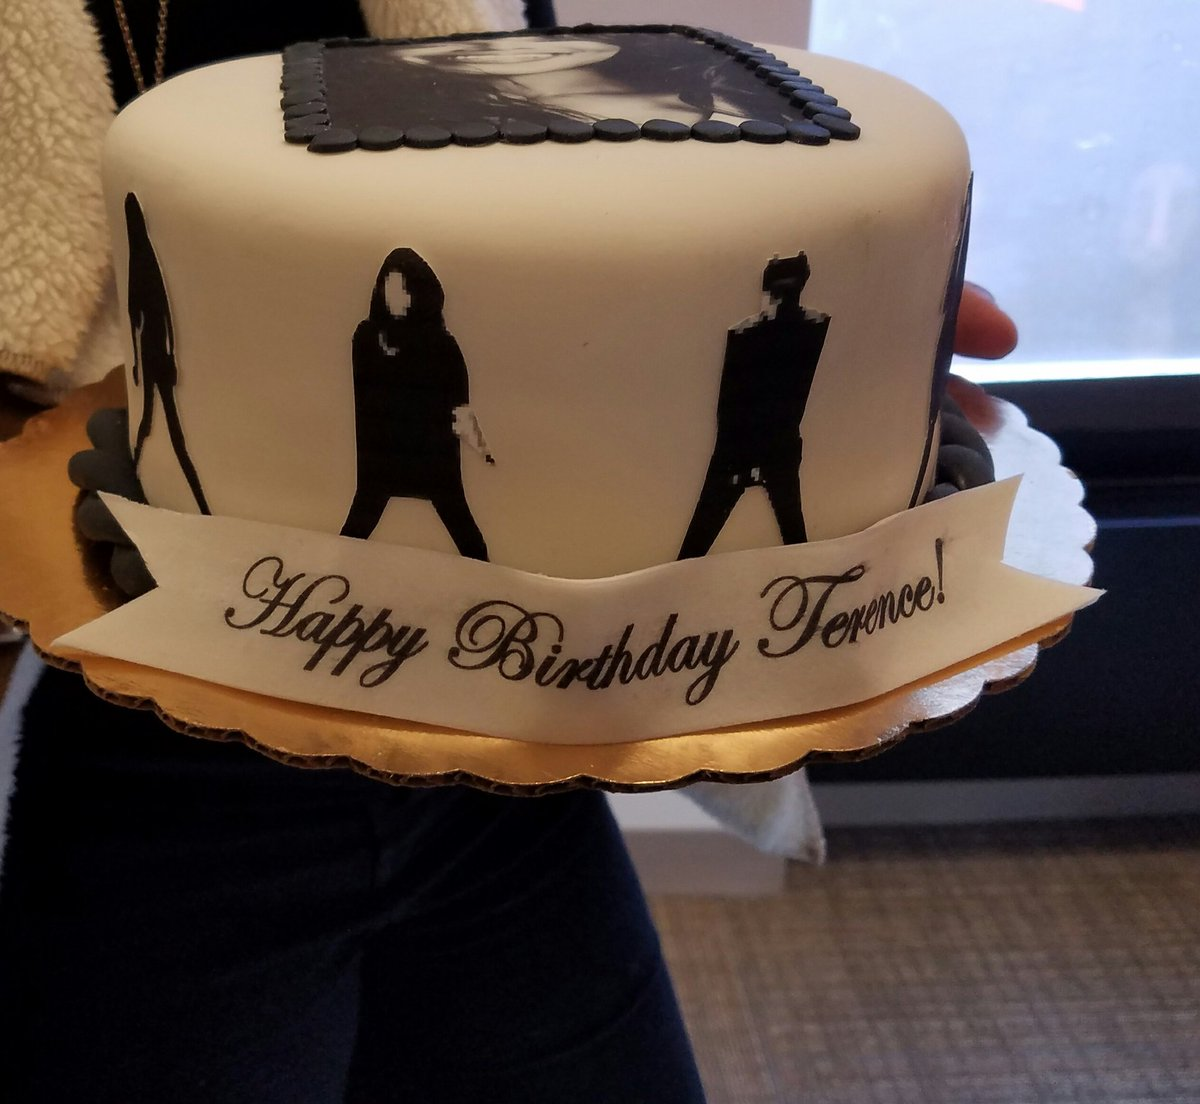 Terence On Twitter Its My Birthday Today My Coworkers Suprised